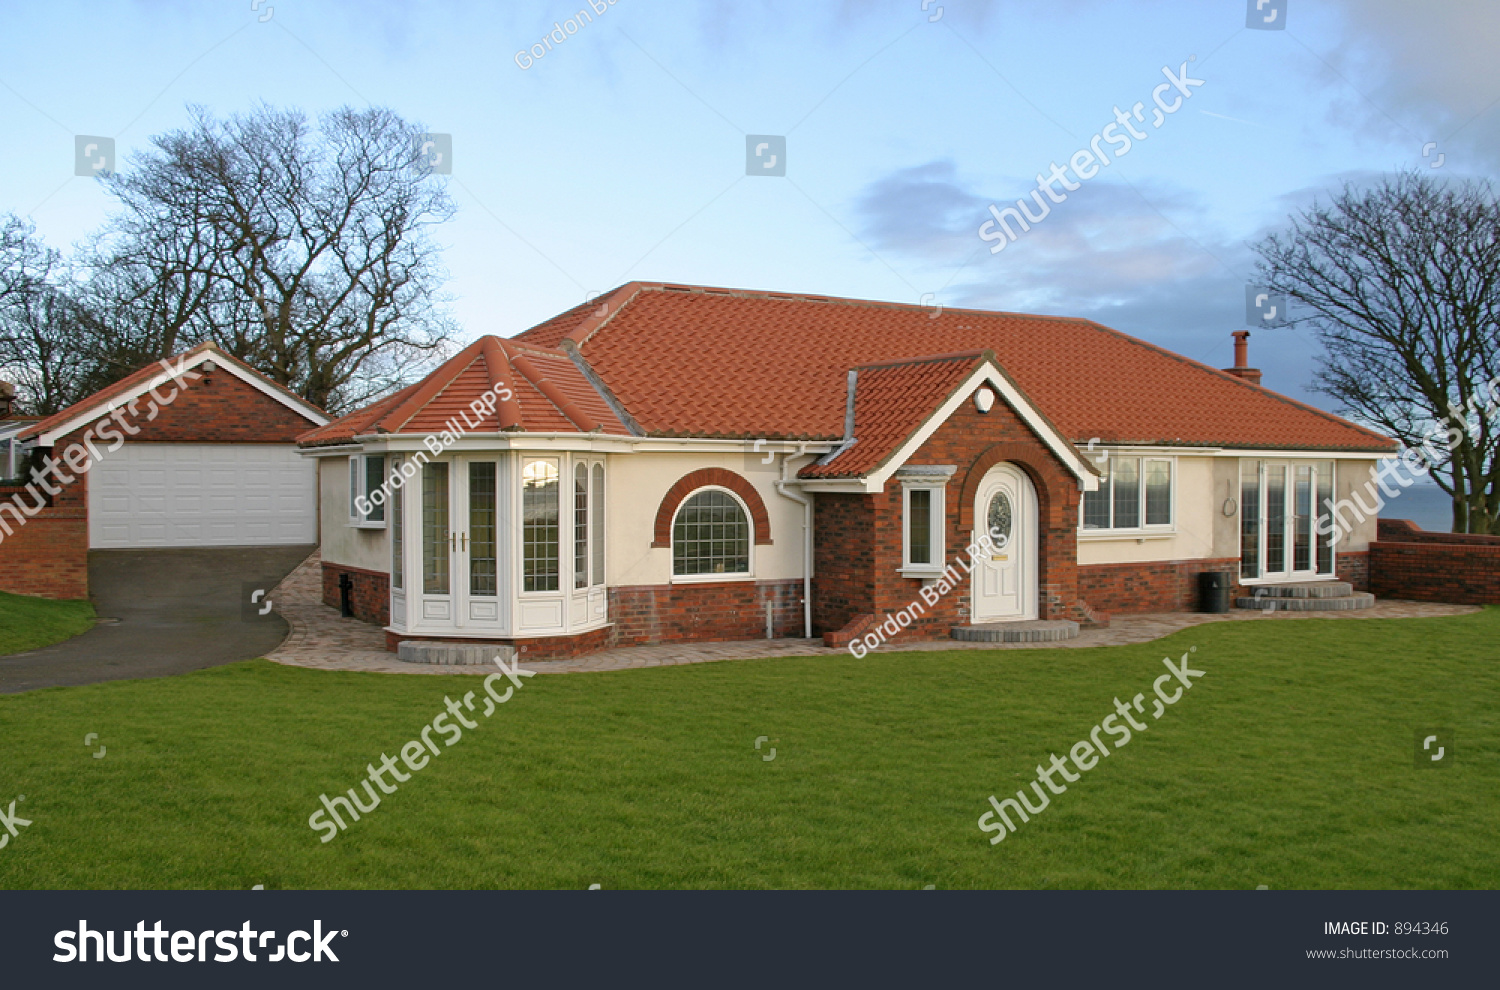 Luxury Uk Bungalow With Garage Stock Photo 894346